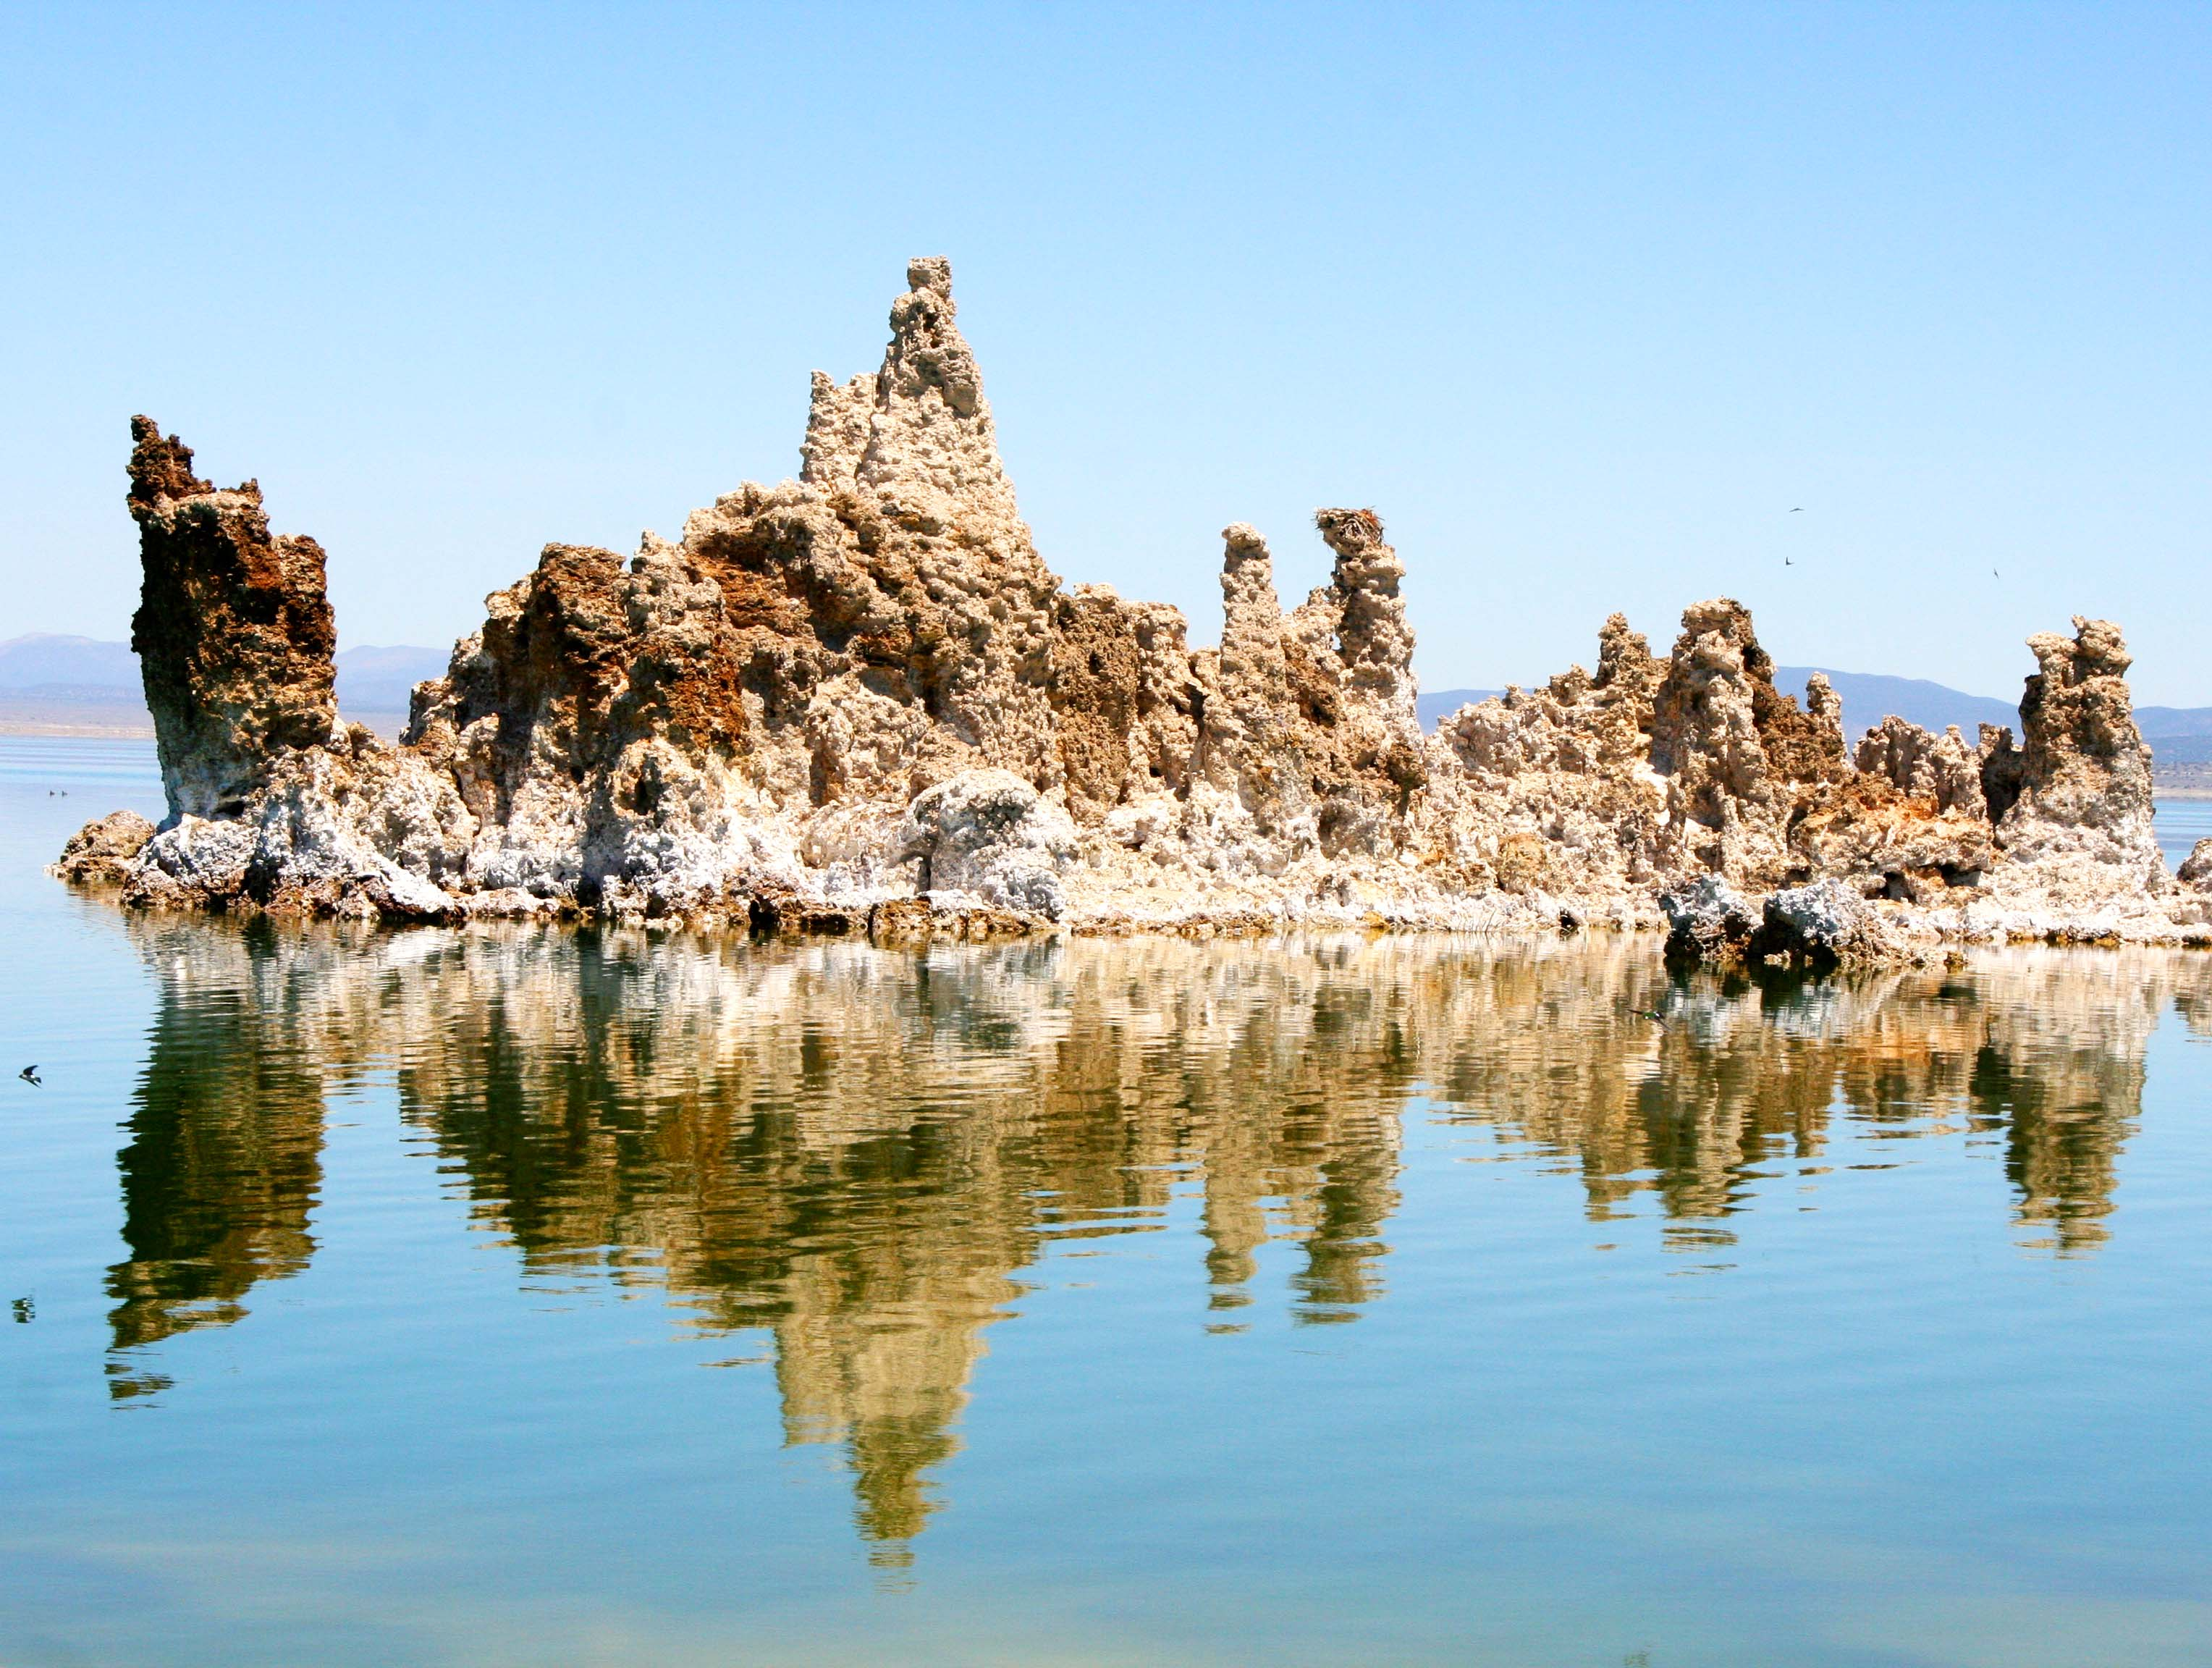 Reflections add extra character to this often photographed tufa island in Mono Lake. (Photo by Peggy Mekemson.)